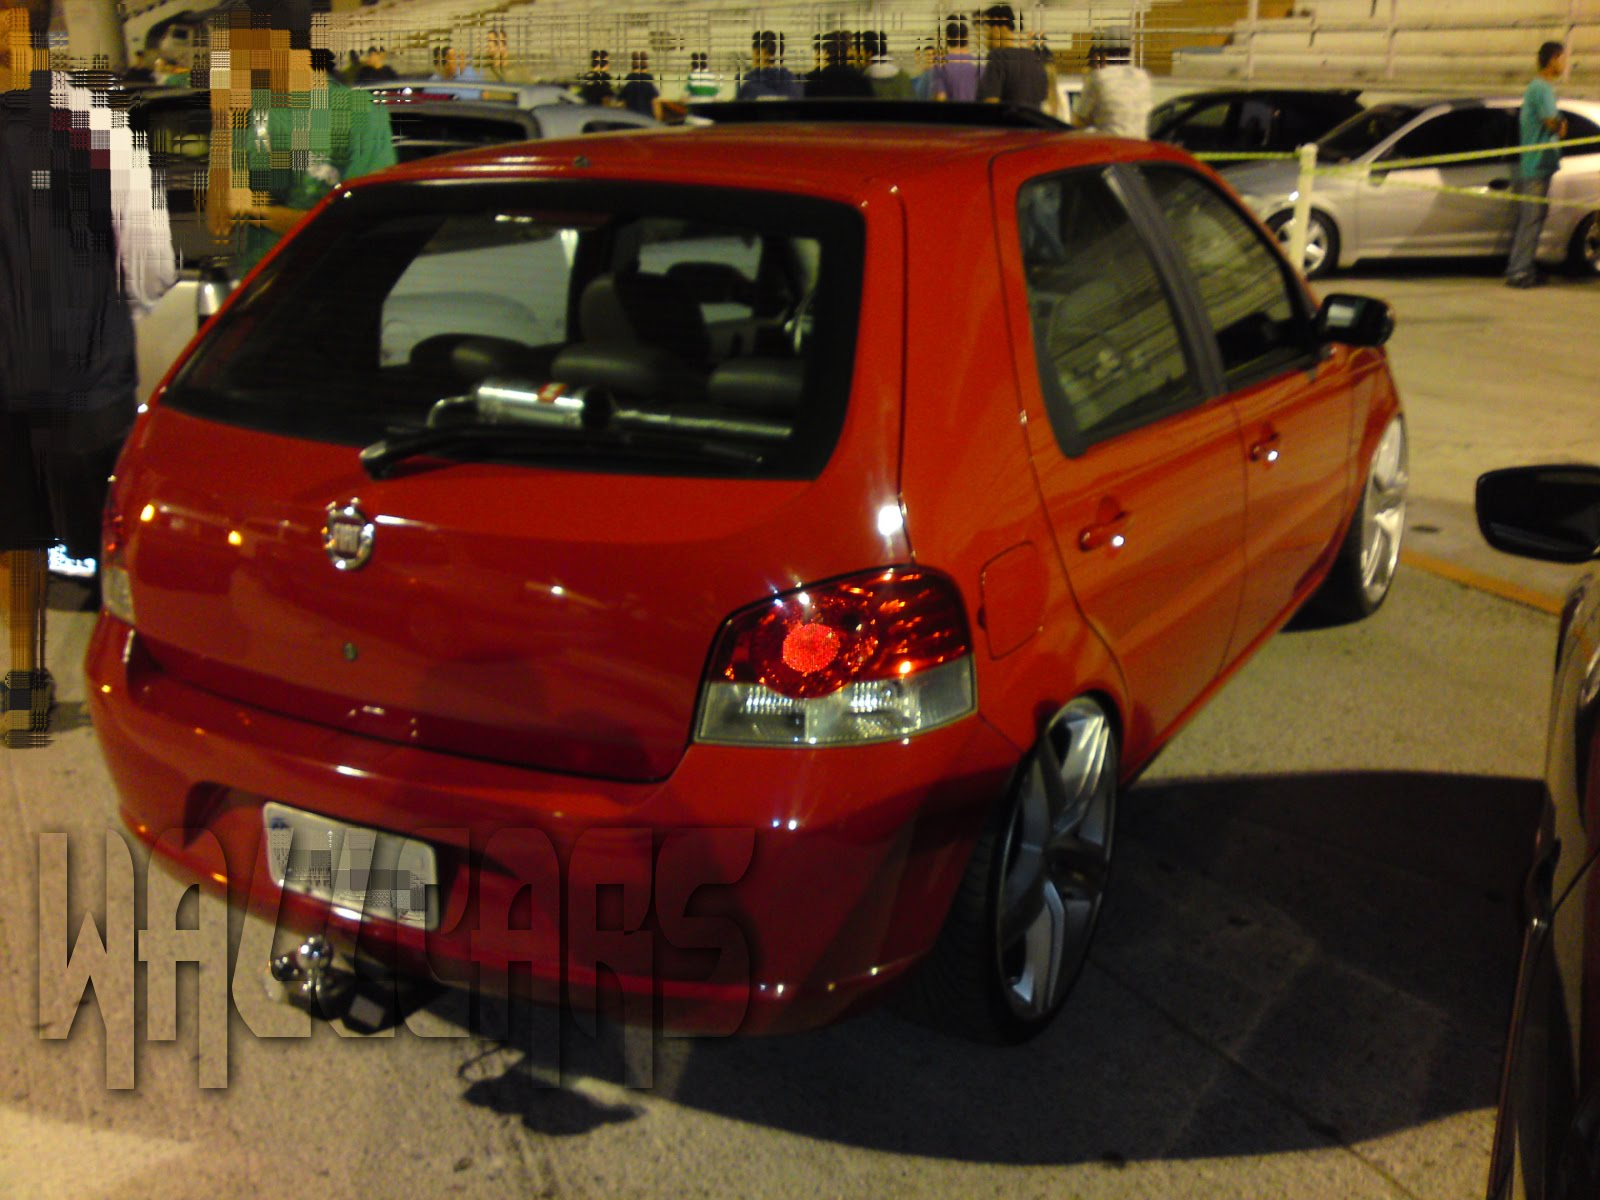 Fiat palio tuning rebaixado rodao e turbo wallpapers carros palio tuning aro 17 altavistaventures Image collections